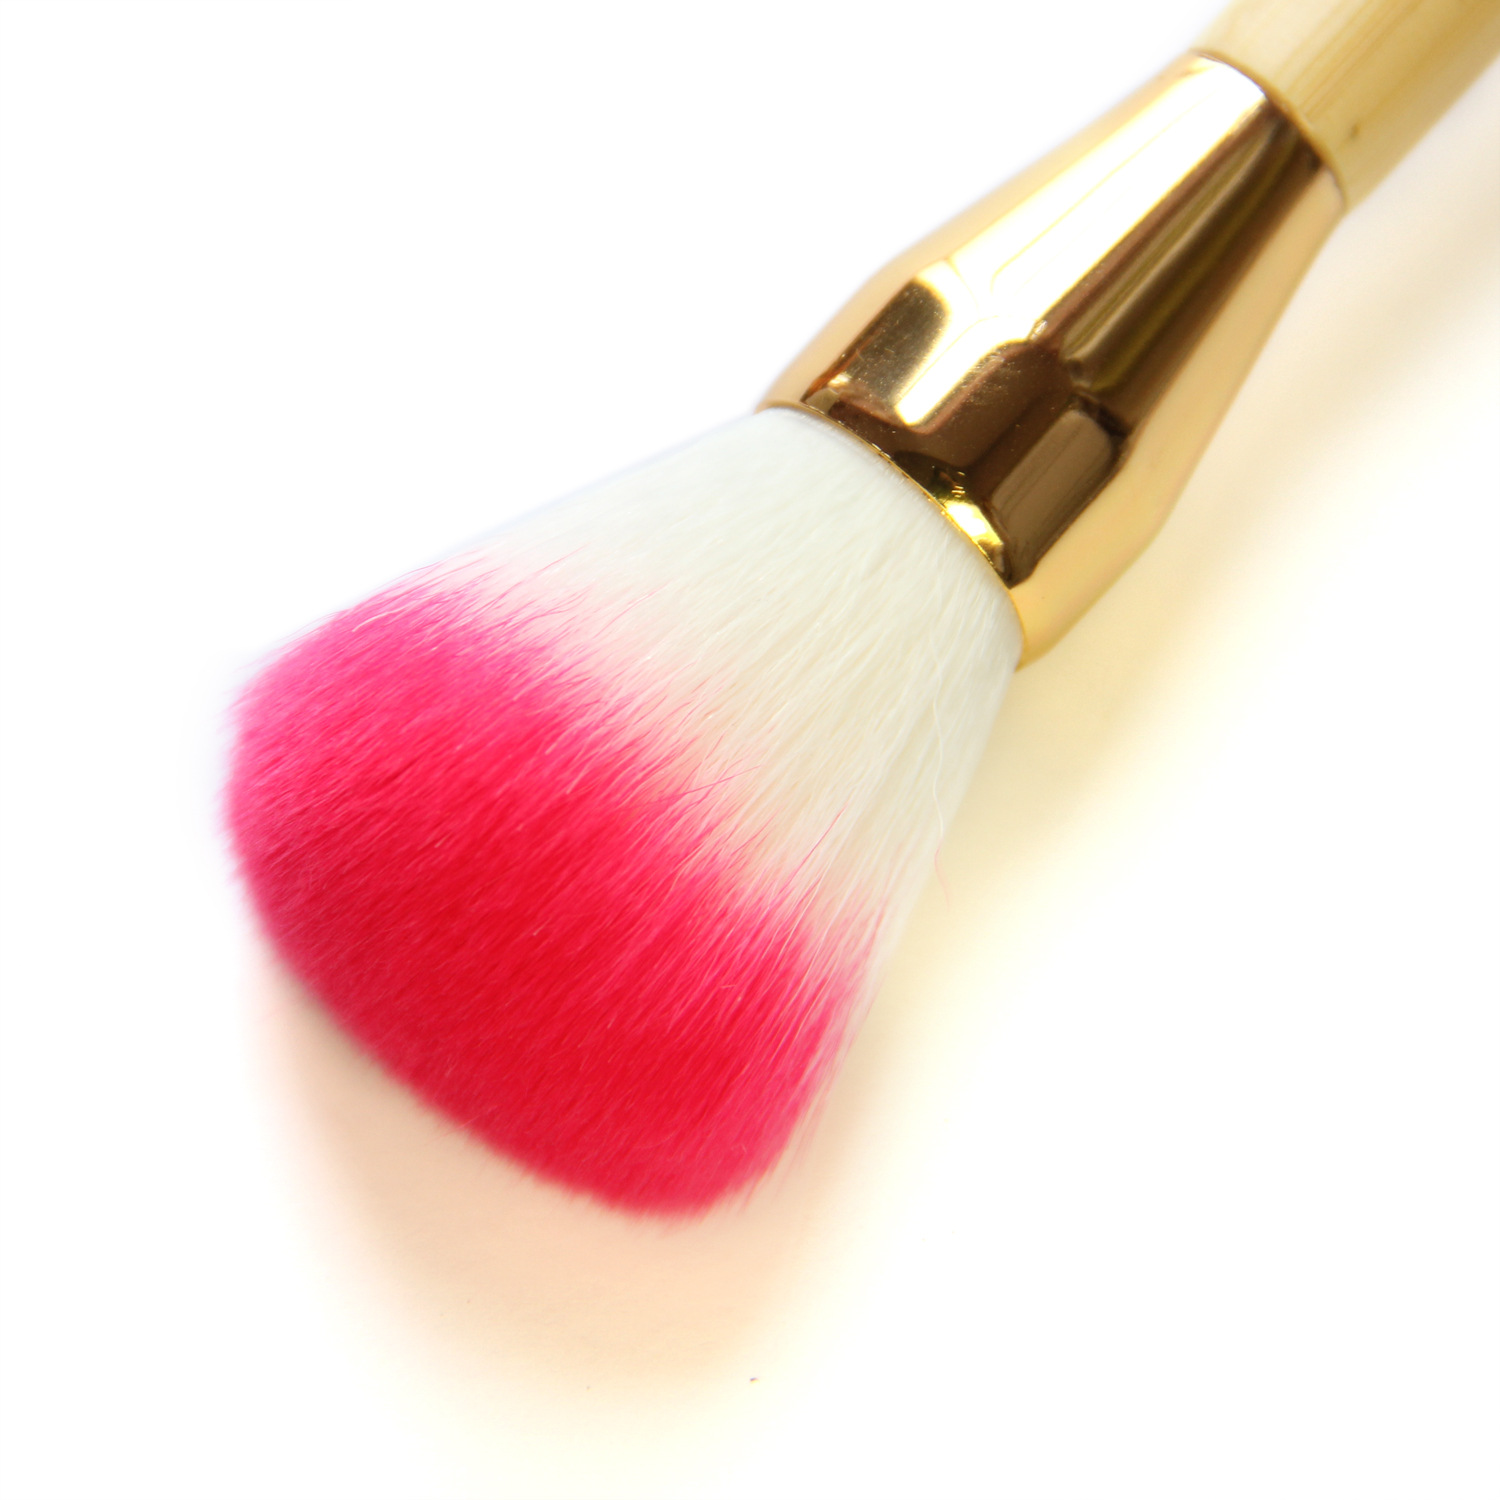 Double Head Blending Brush Kit Makeup Powder Puff Blush Brush